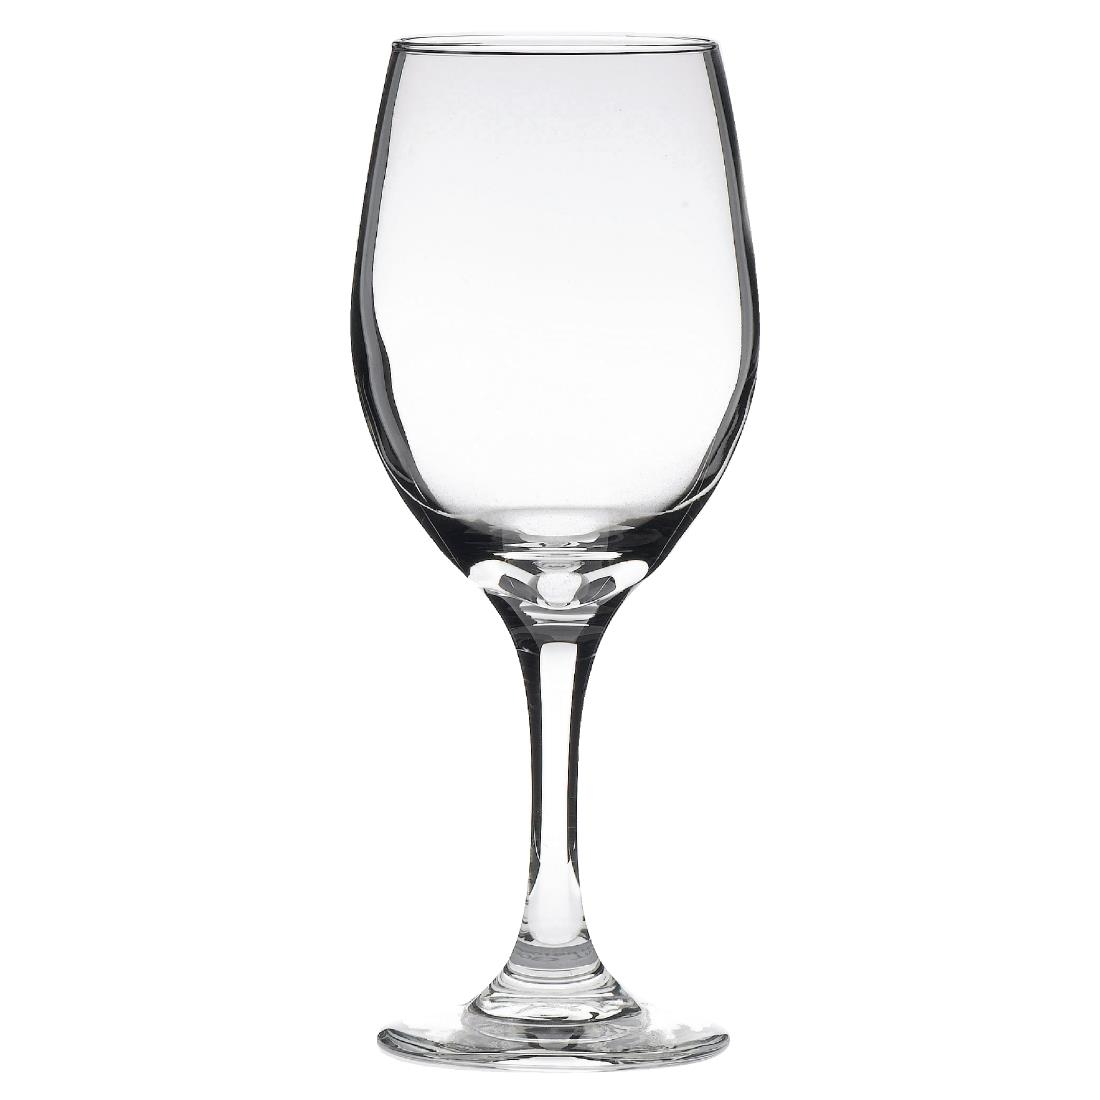 Libbey Perception Goblets 410ml CE Marked at 250ml Pack of 12